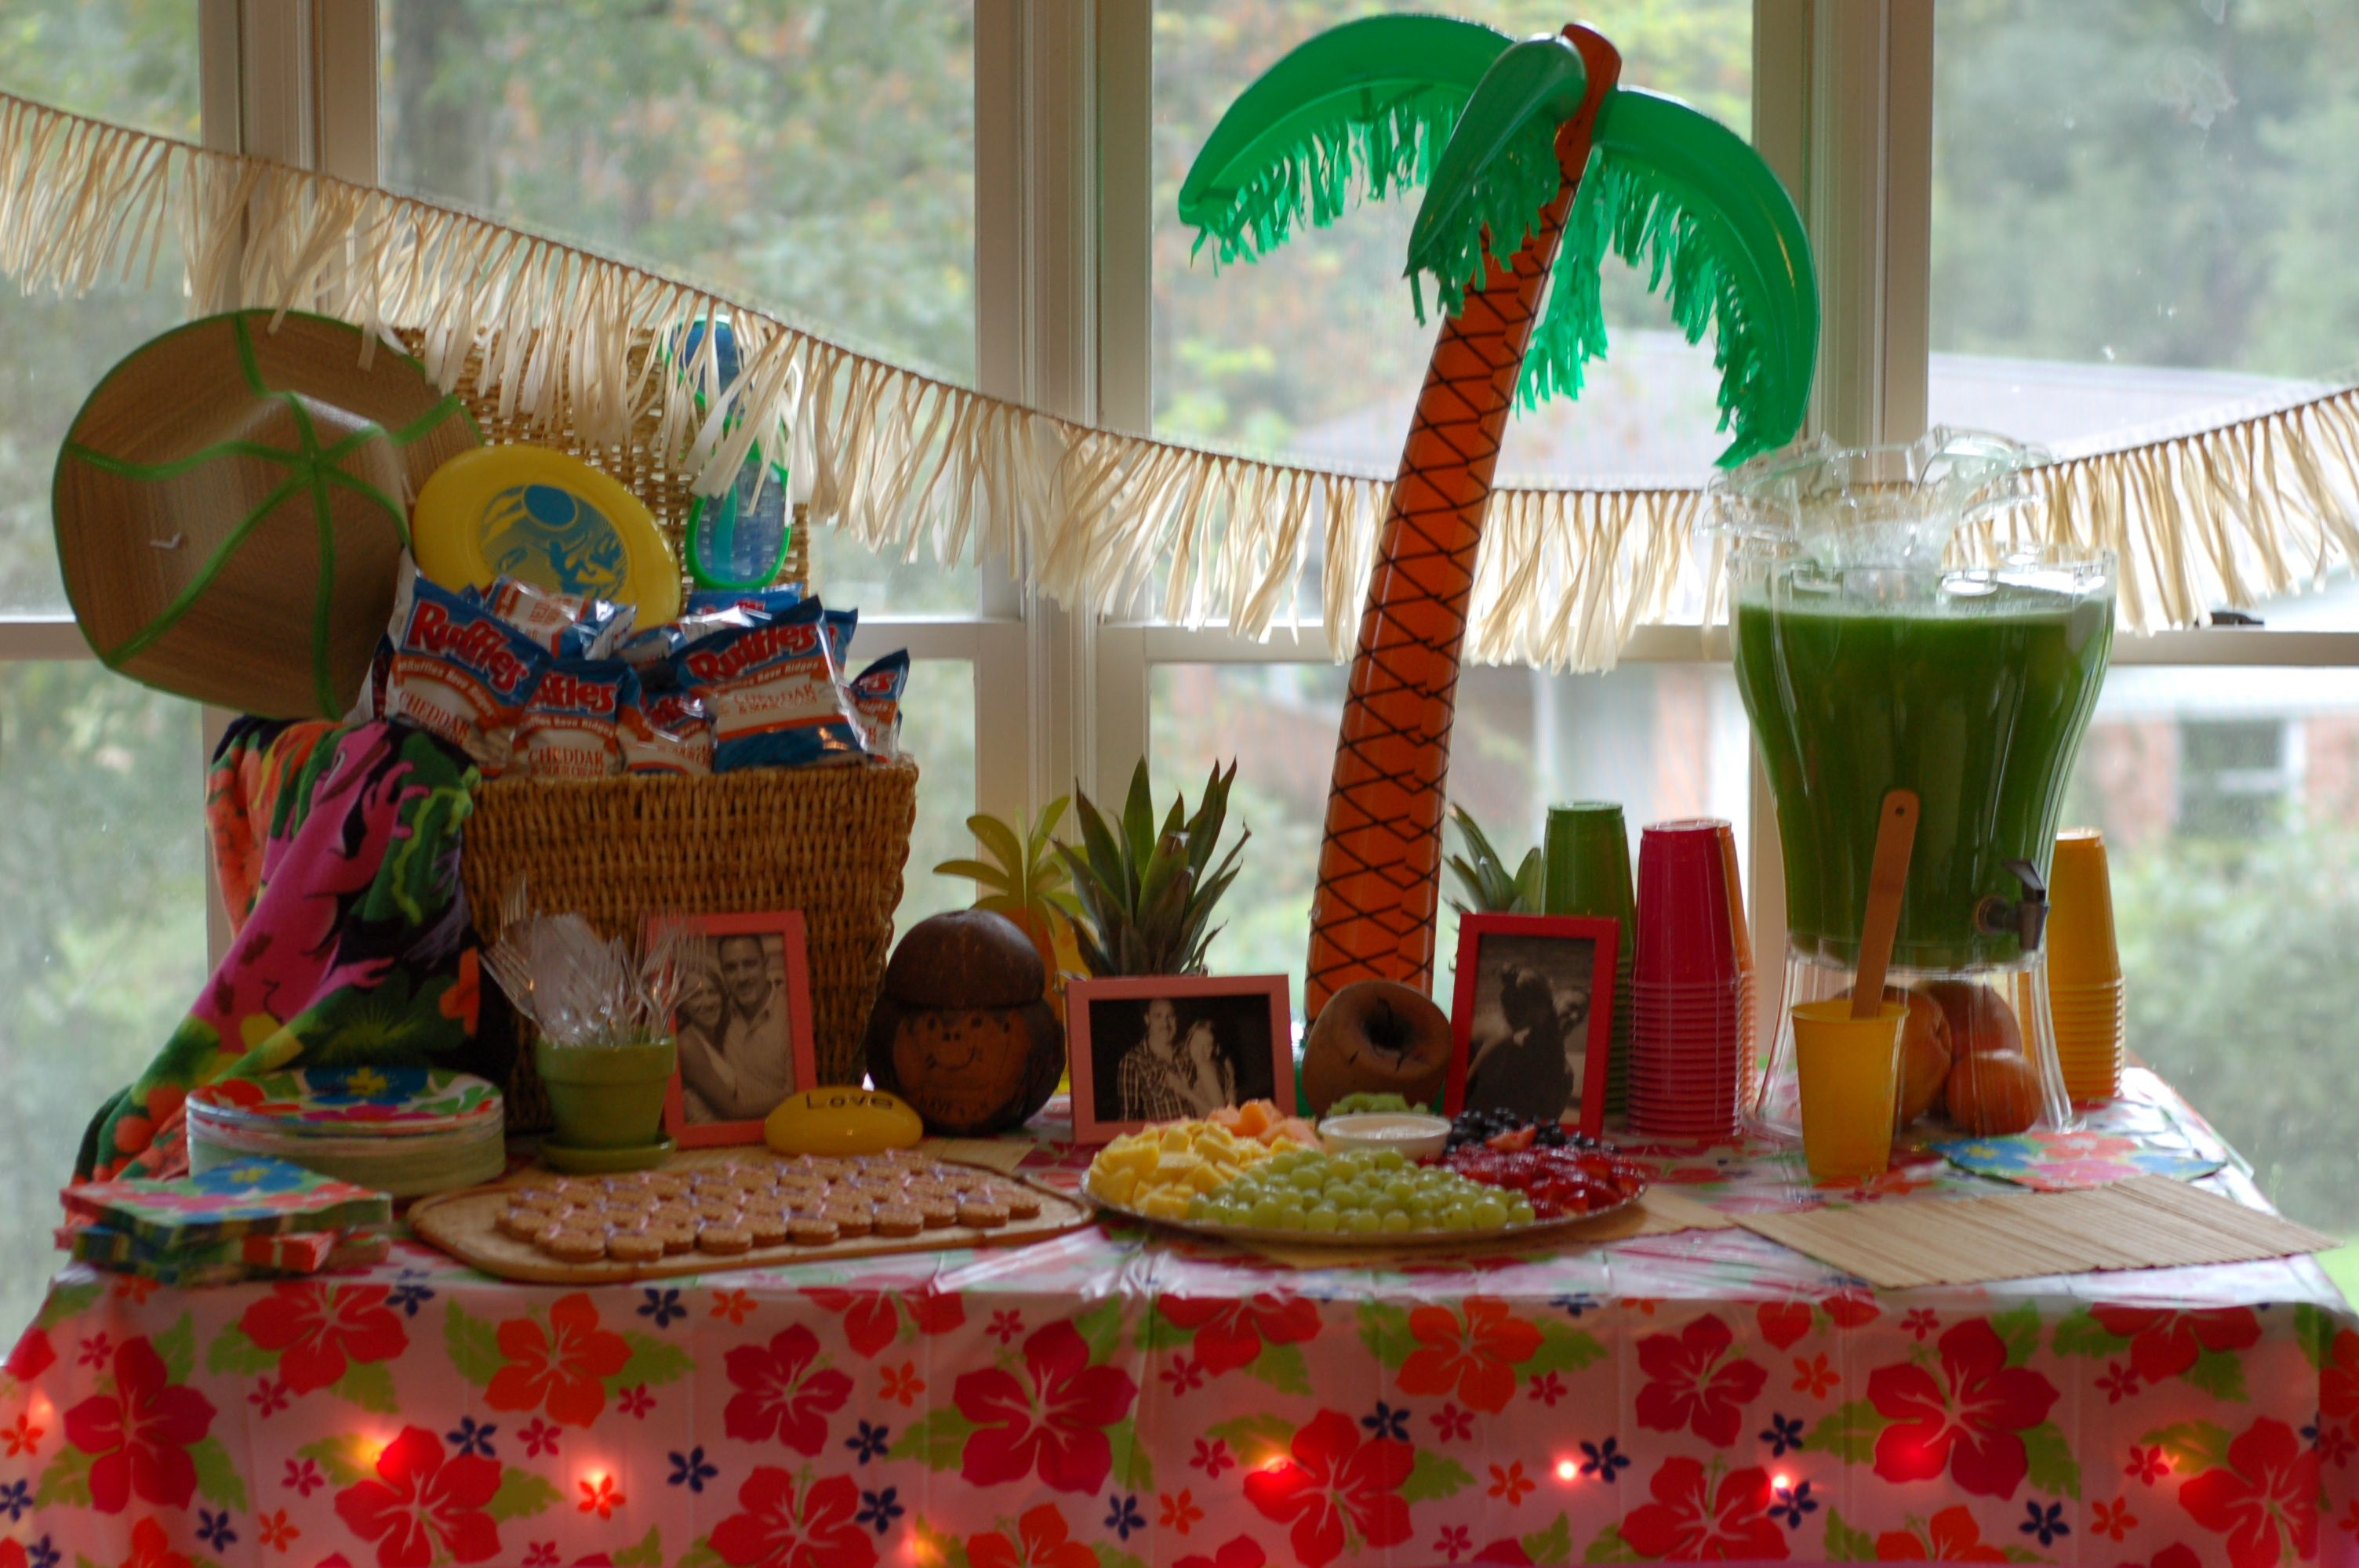 Beach theme party hawaiian theme party pinterest - Themes for a th birthday party ...